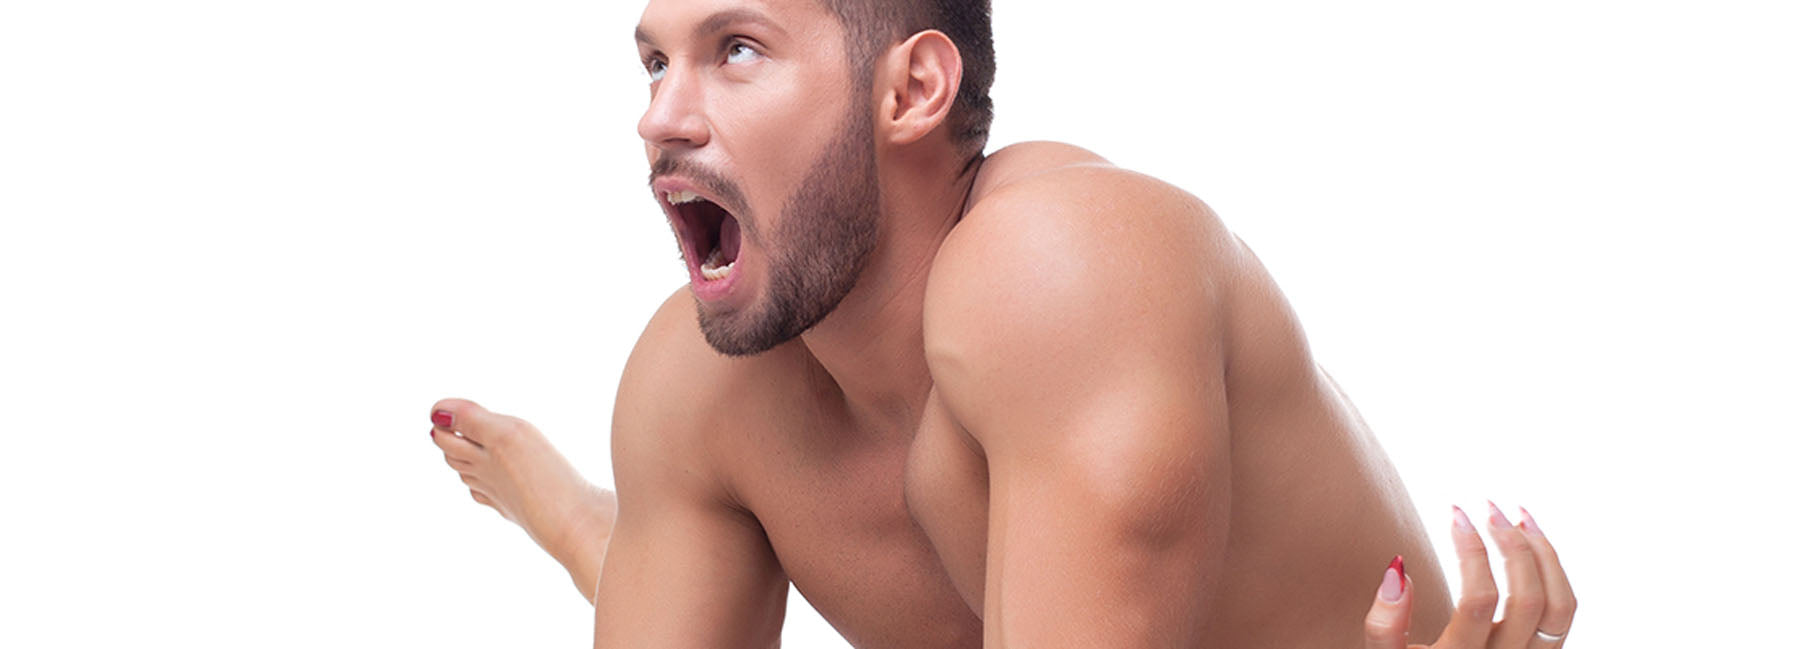 Male Orgasm: Get Loud and Proud